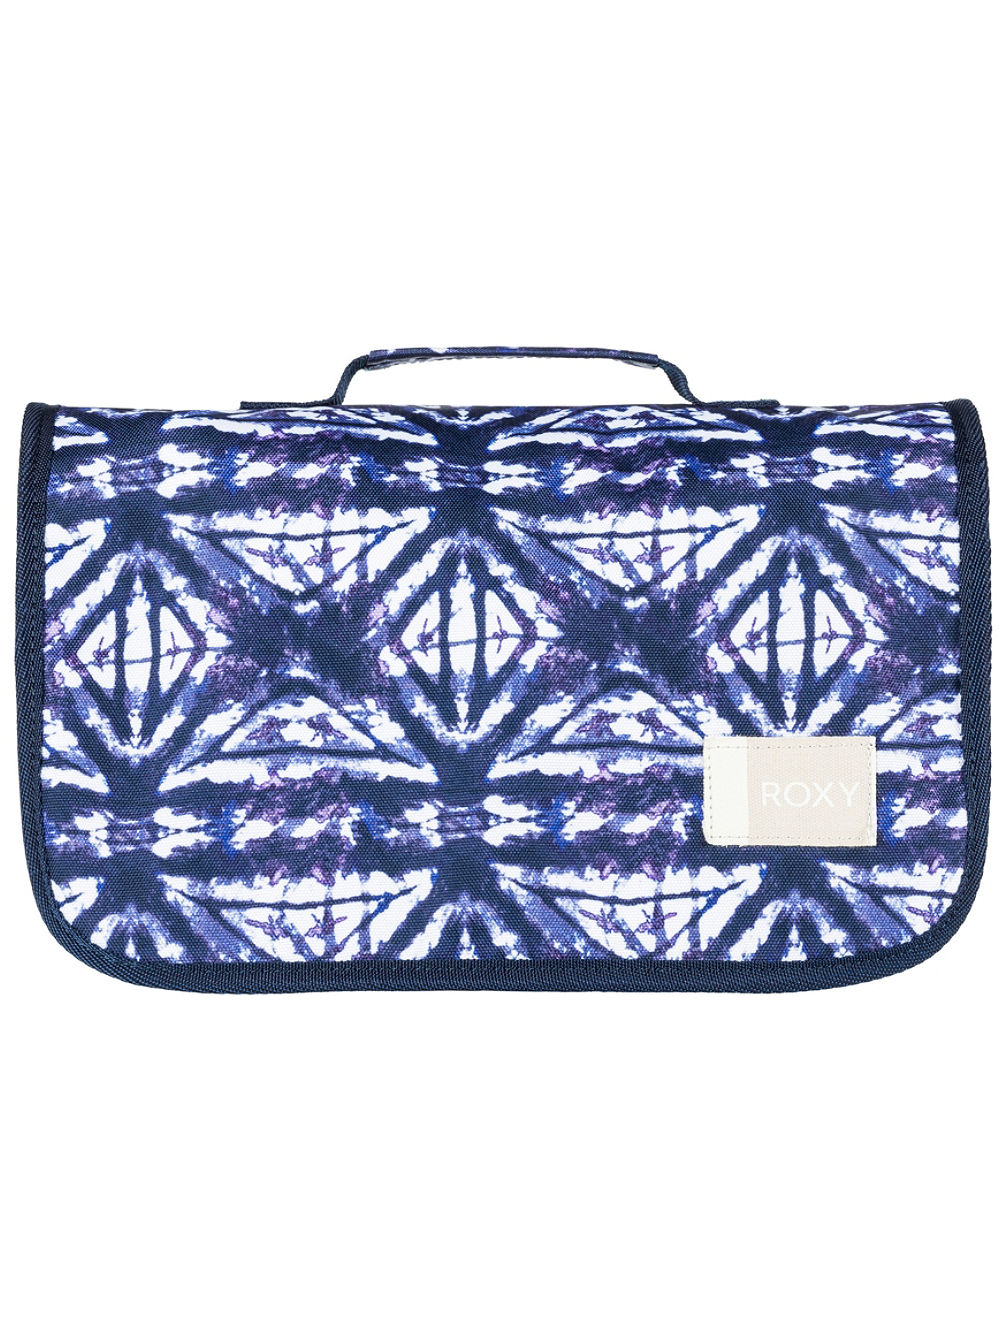 Waveform Vanity Bag